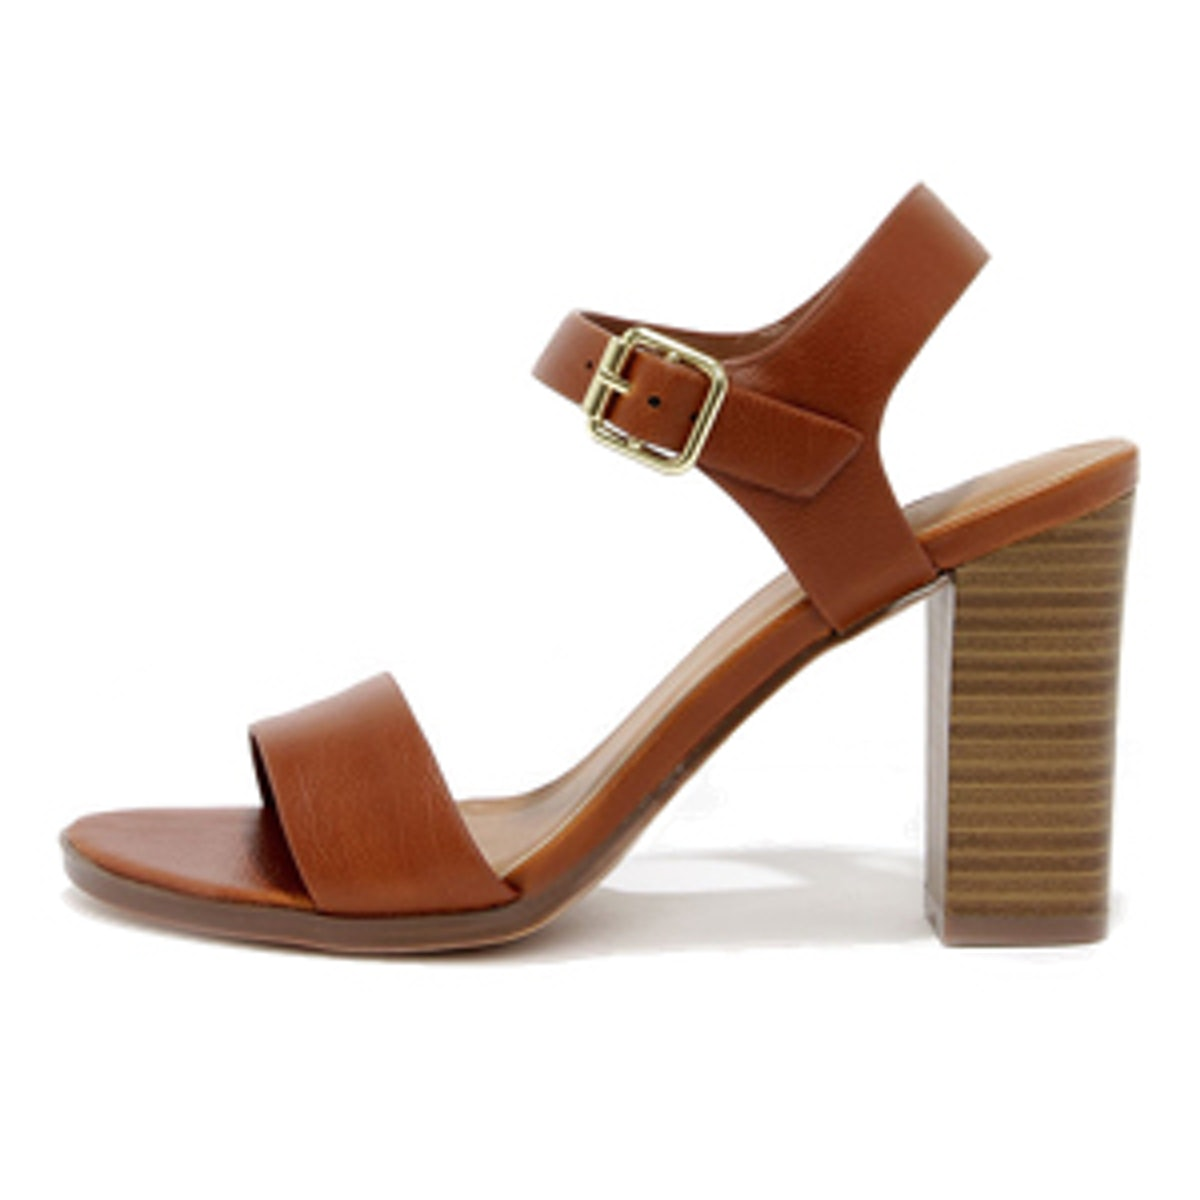 In Any Event Tan High Heel Sandal